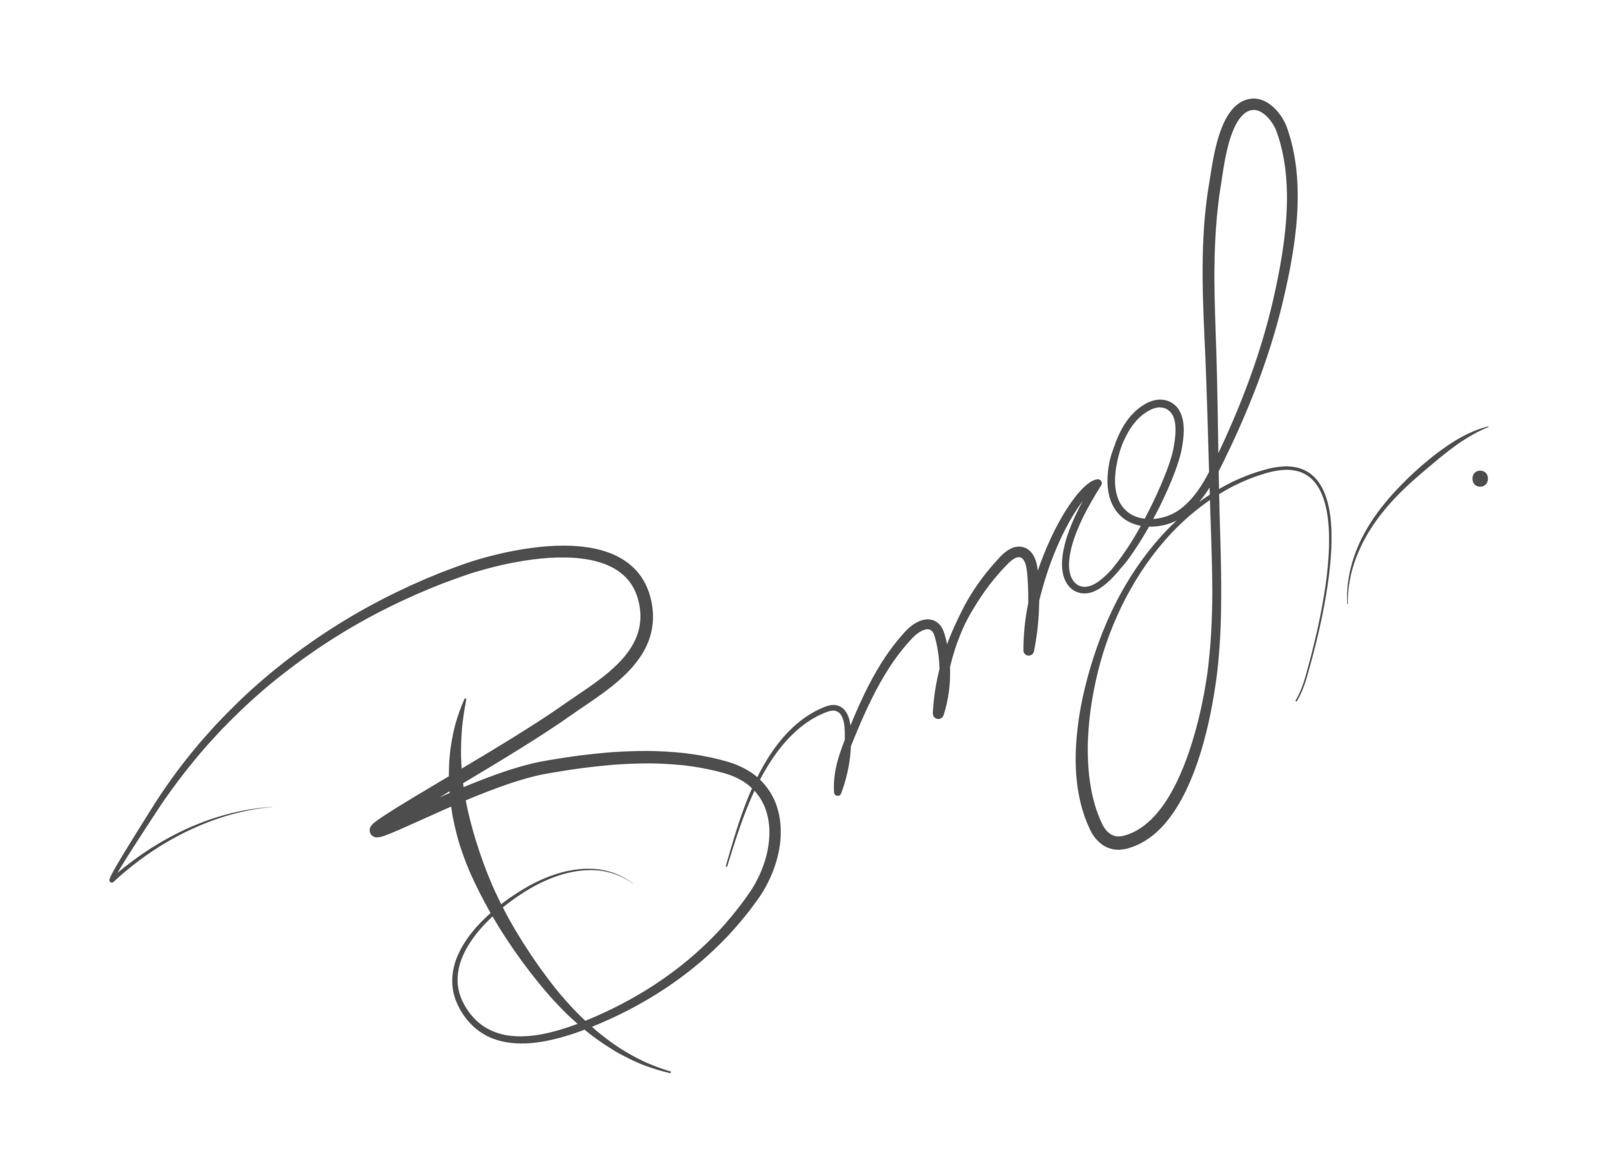 Abstract hand-drawn calligraphic autograph. Custom manual signature for documents by Grommik